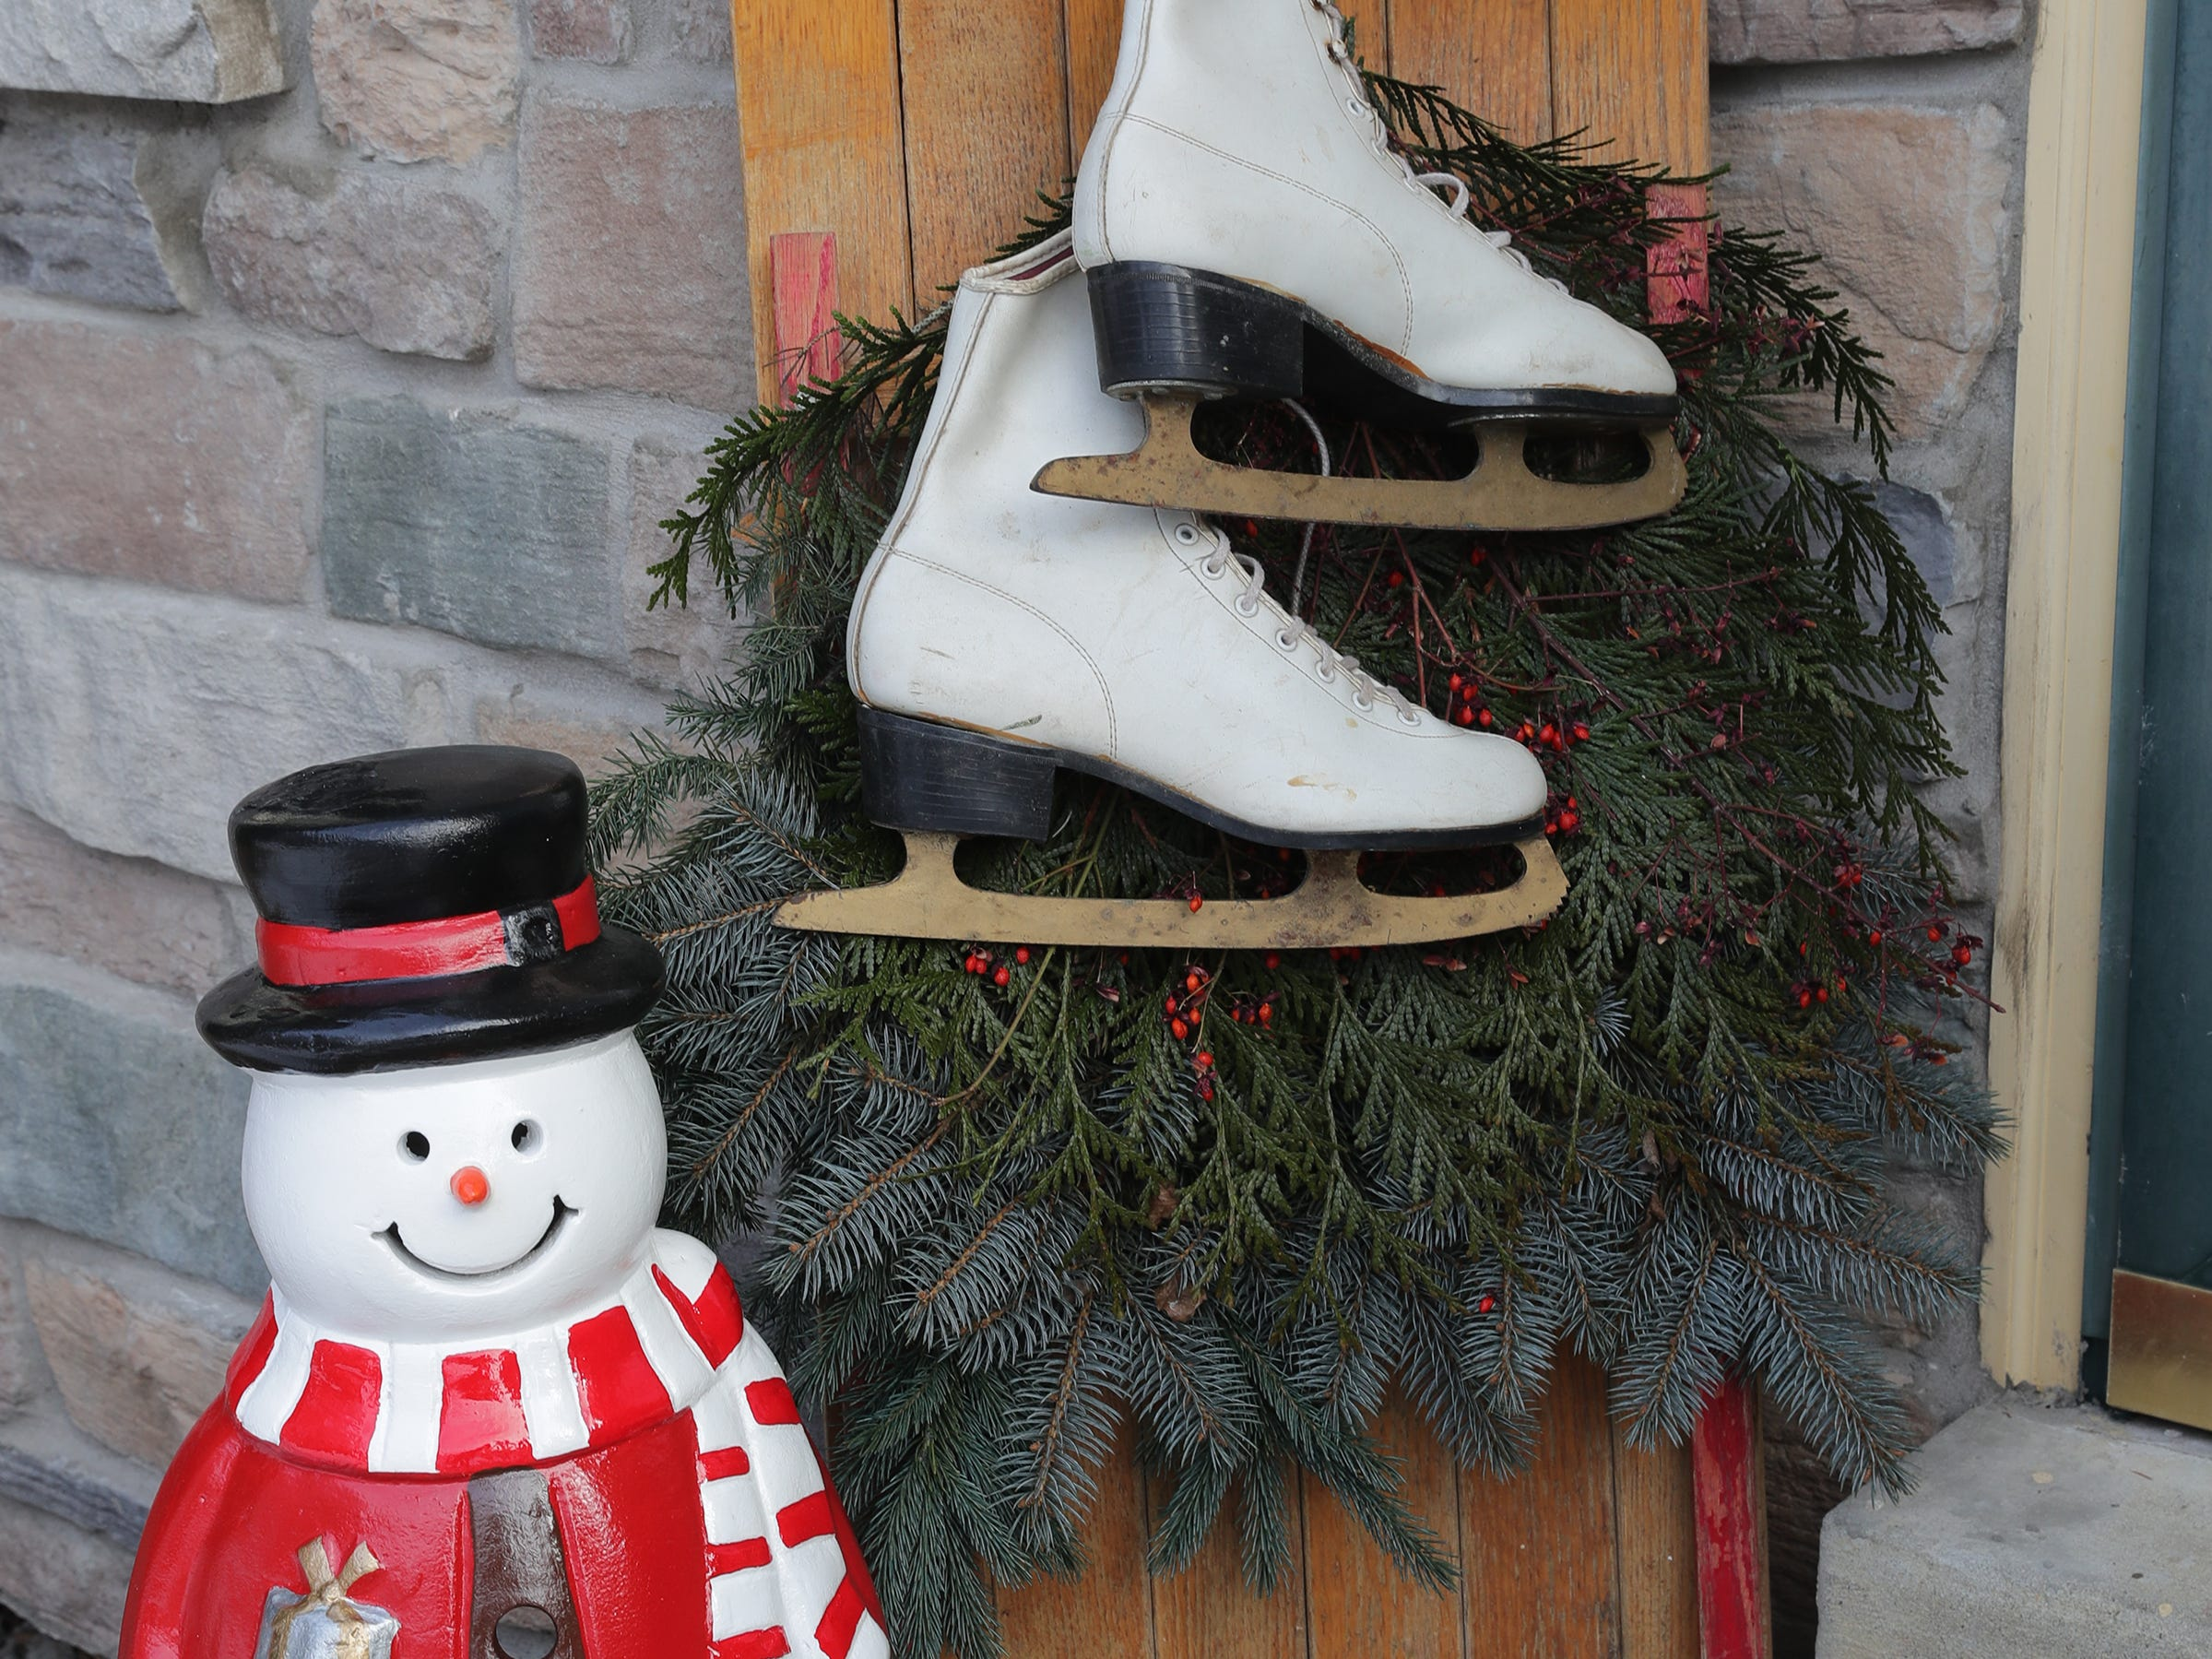 A snowman and old pair of ice skates hanging on a sled greet visitors to the Muskego home.